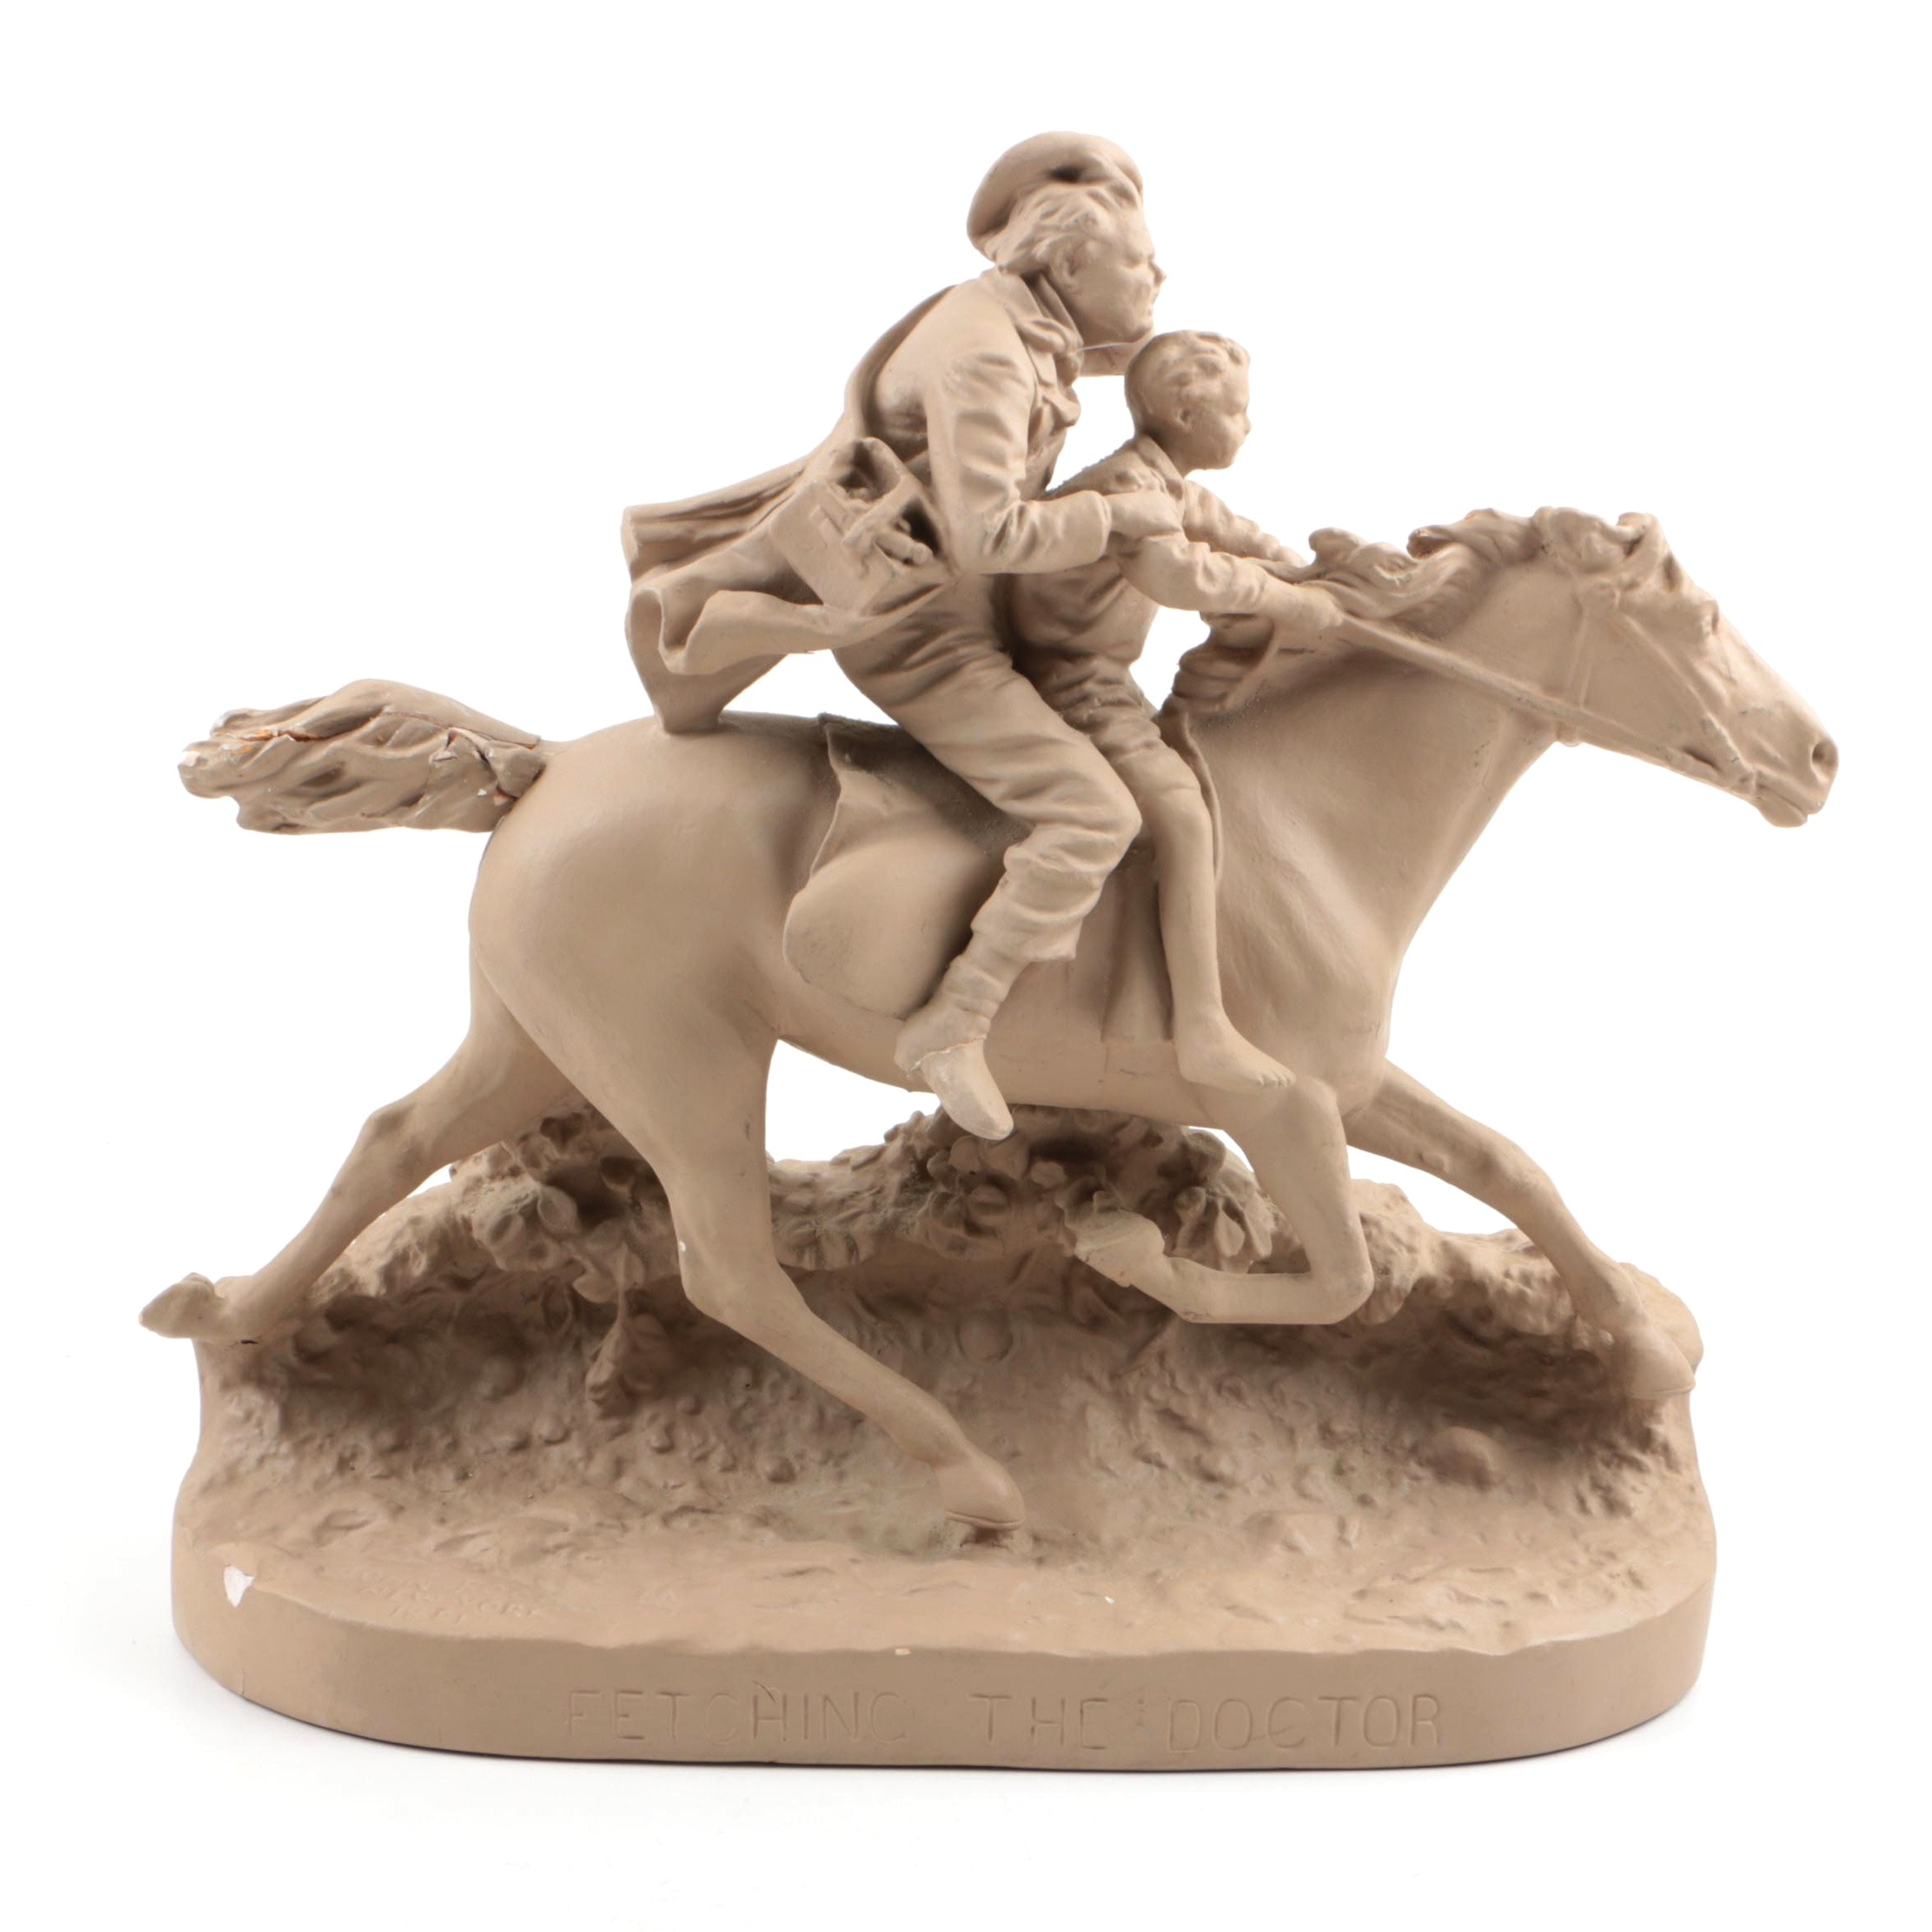 """John Rogers Painted Plaster Sculpture """"Fetching the Doctor"""""""